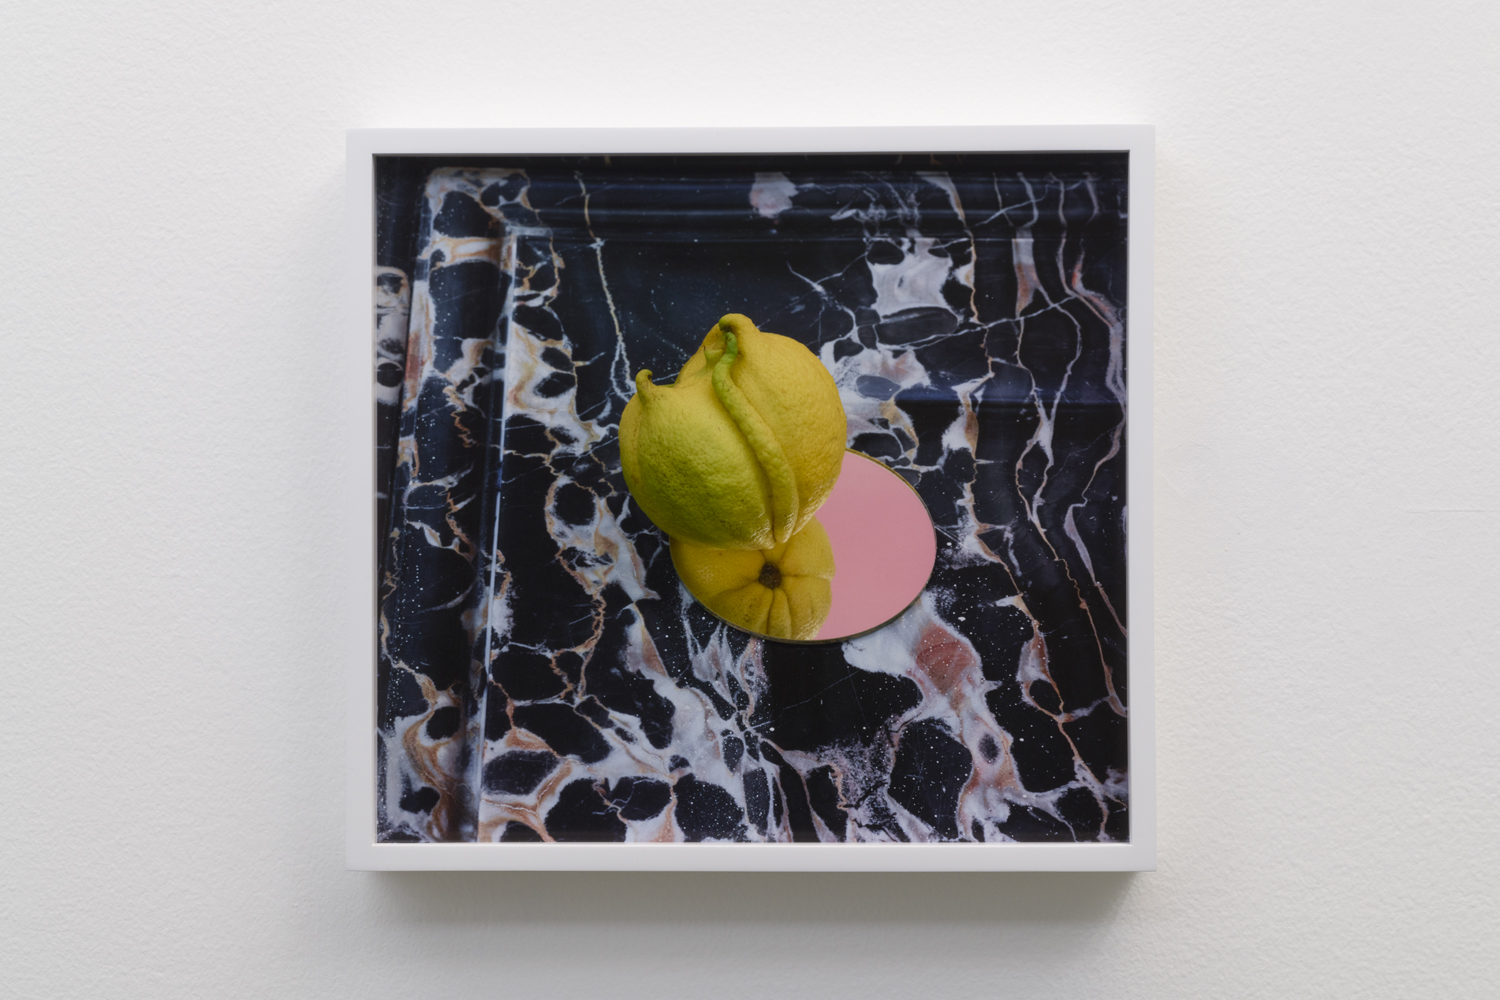 Untitled (Lemon on mirror on marble), 2017  Pigment print  11 x 12 inches